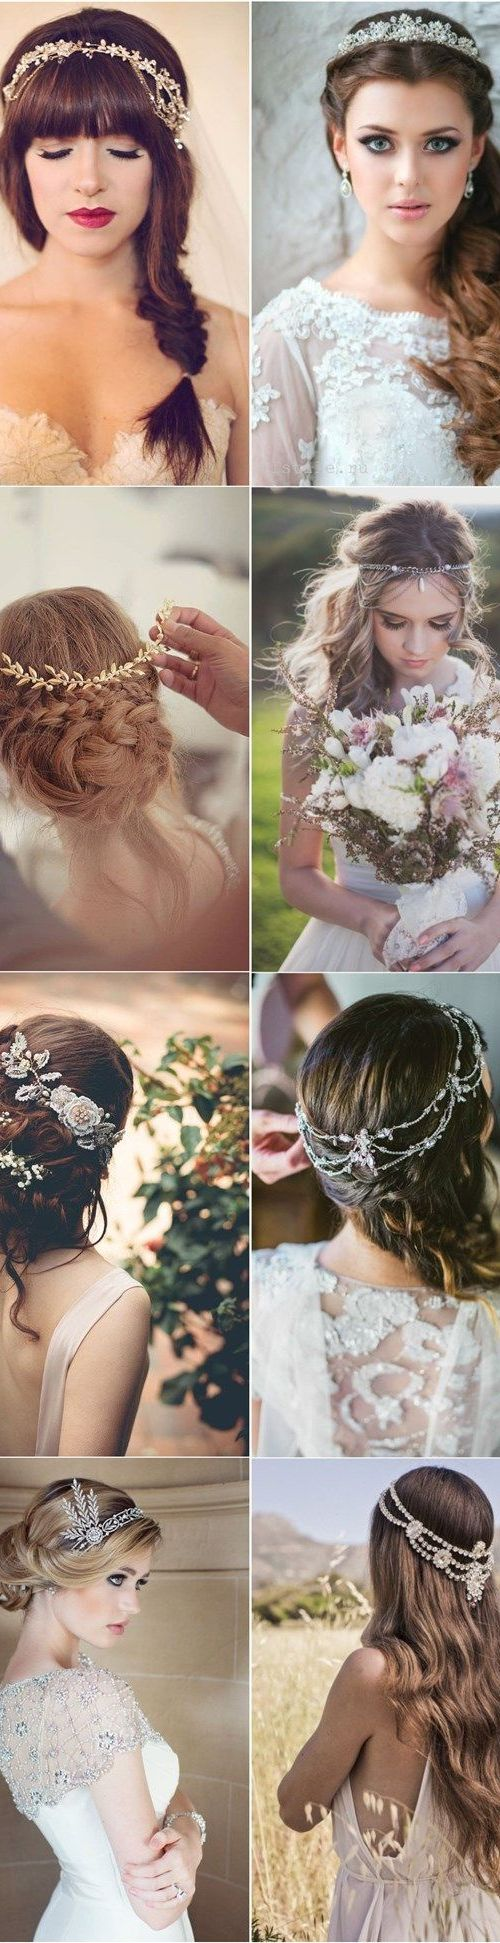 Eight Romantic Bridal Hairstyles